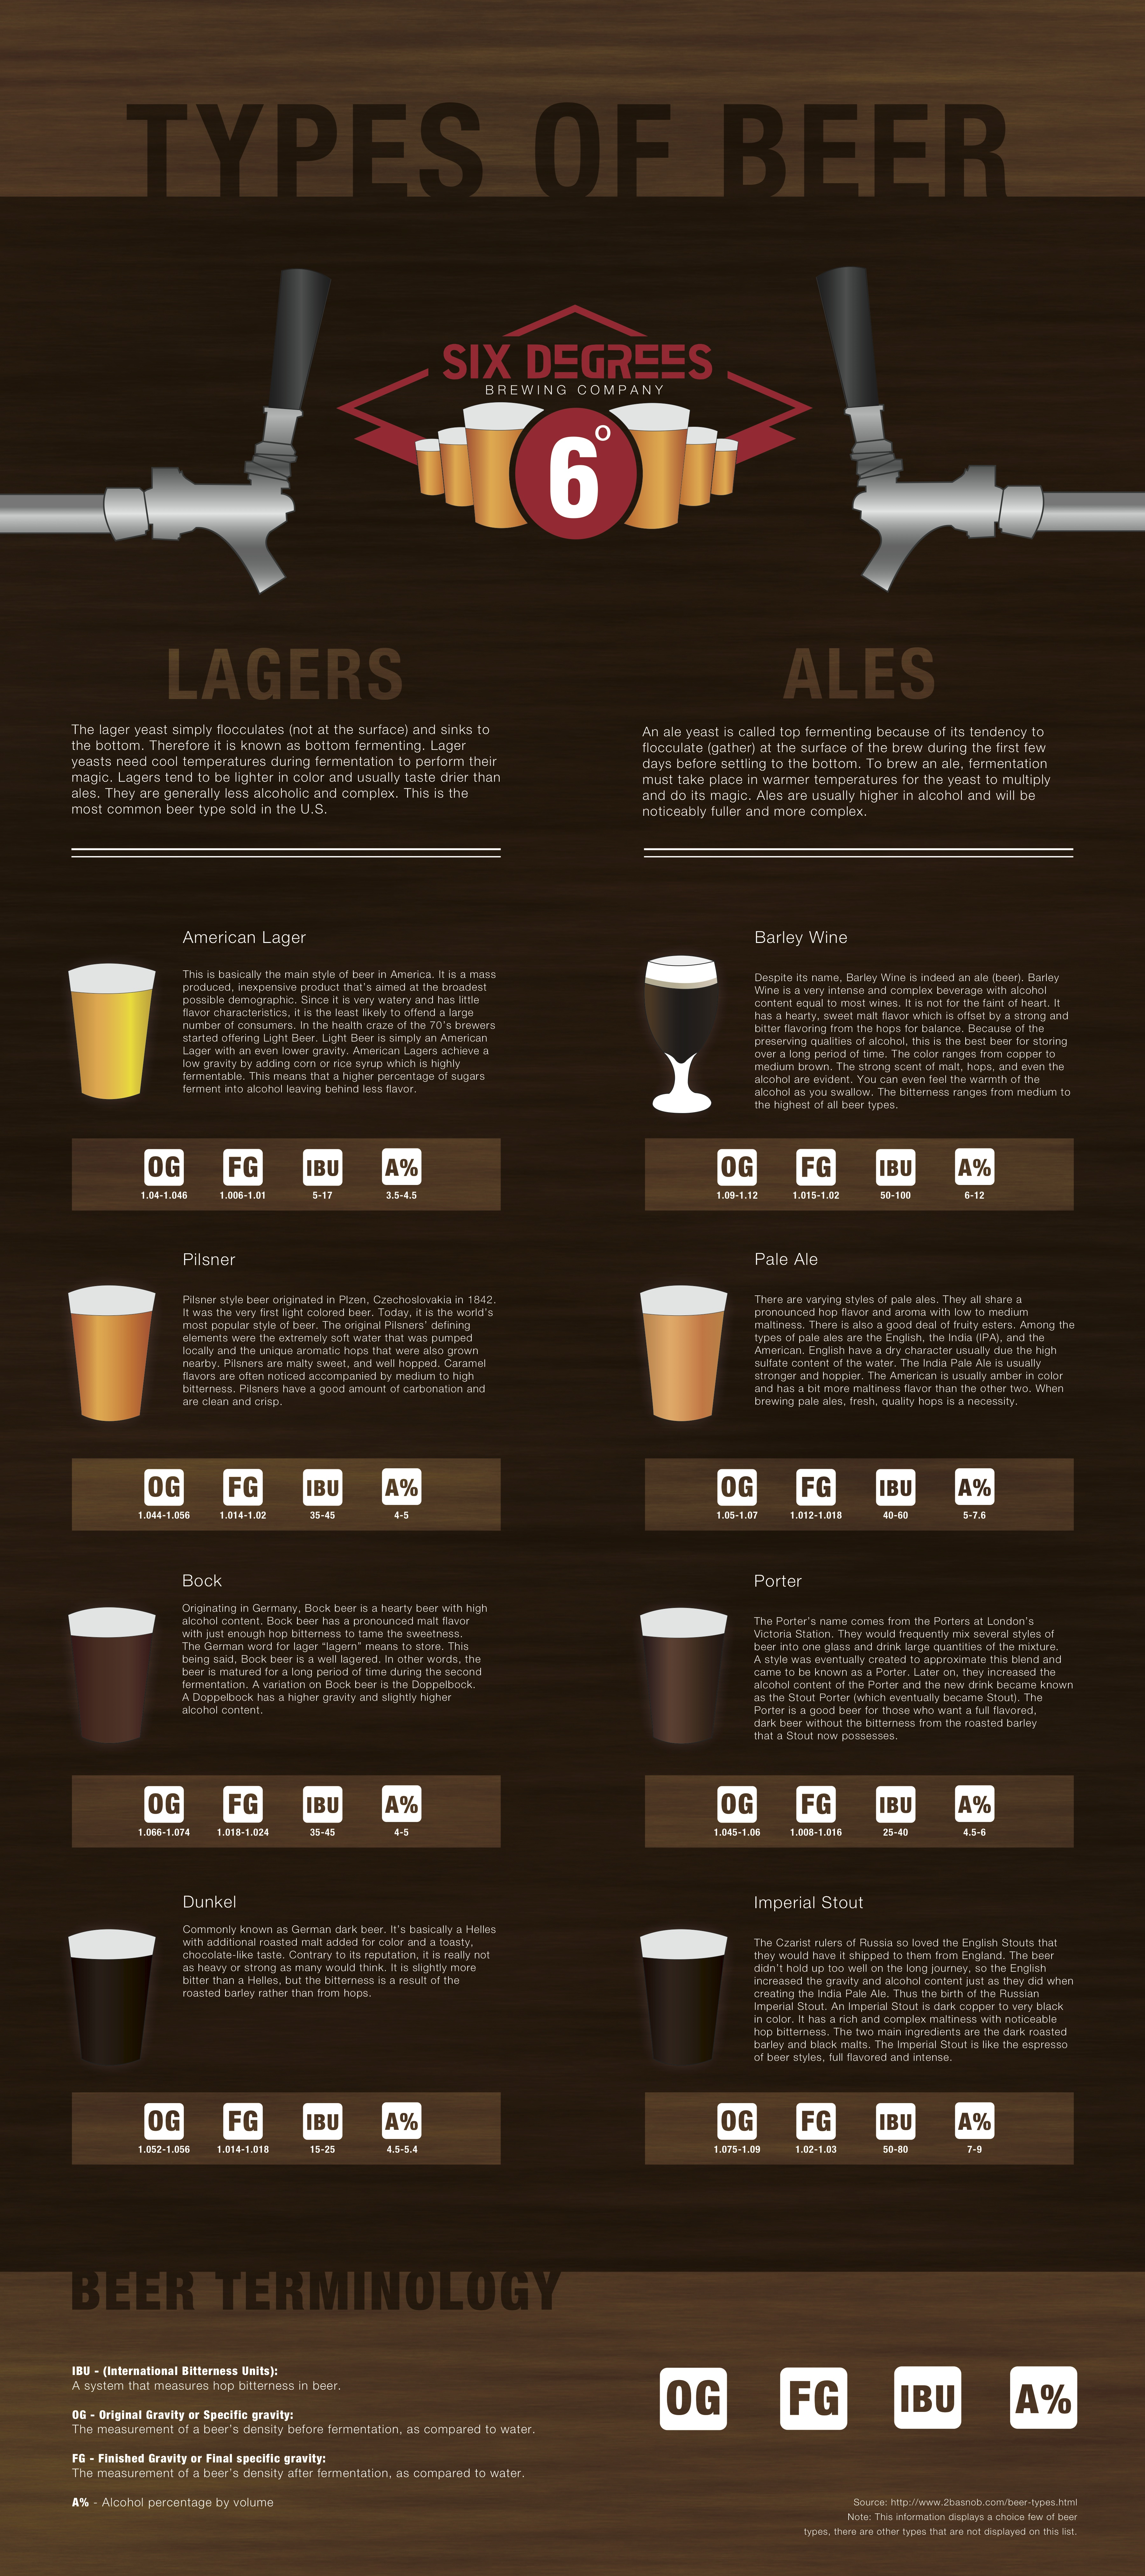 Types-of-Beer-Infographic-meme-blog-facts